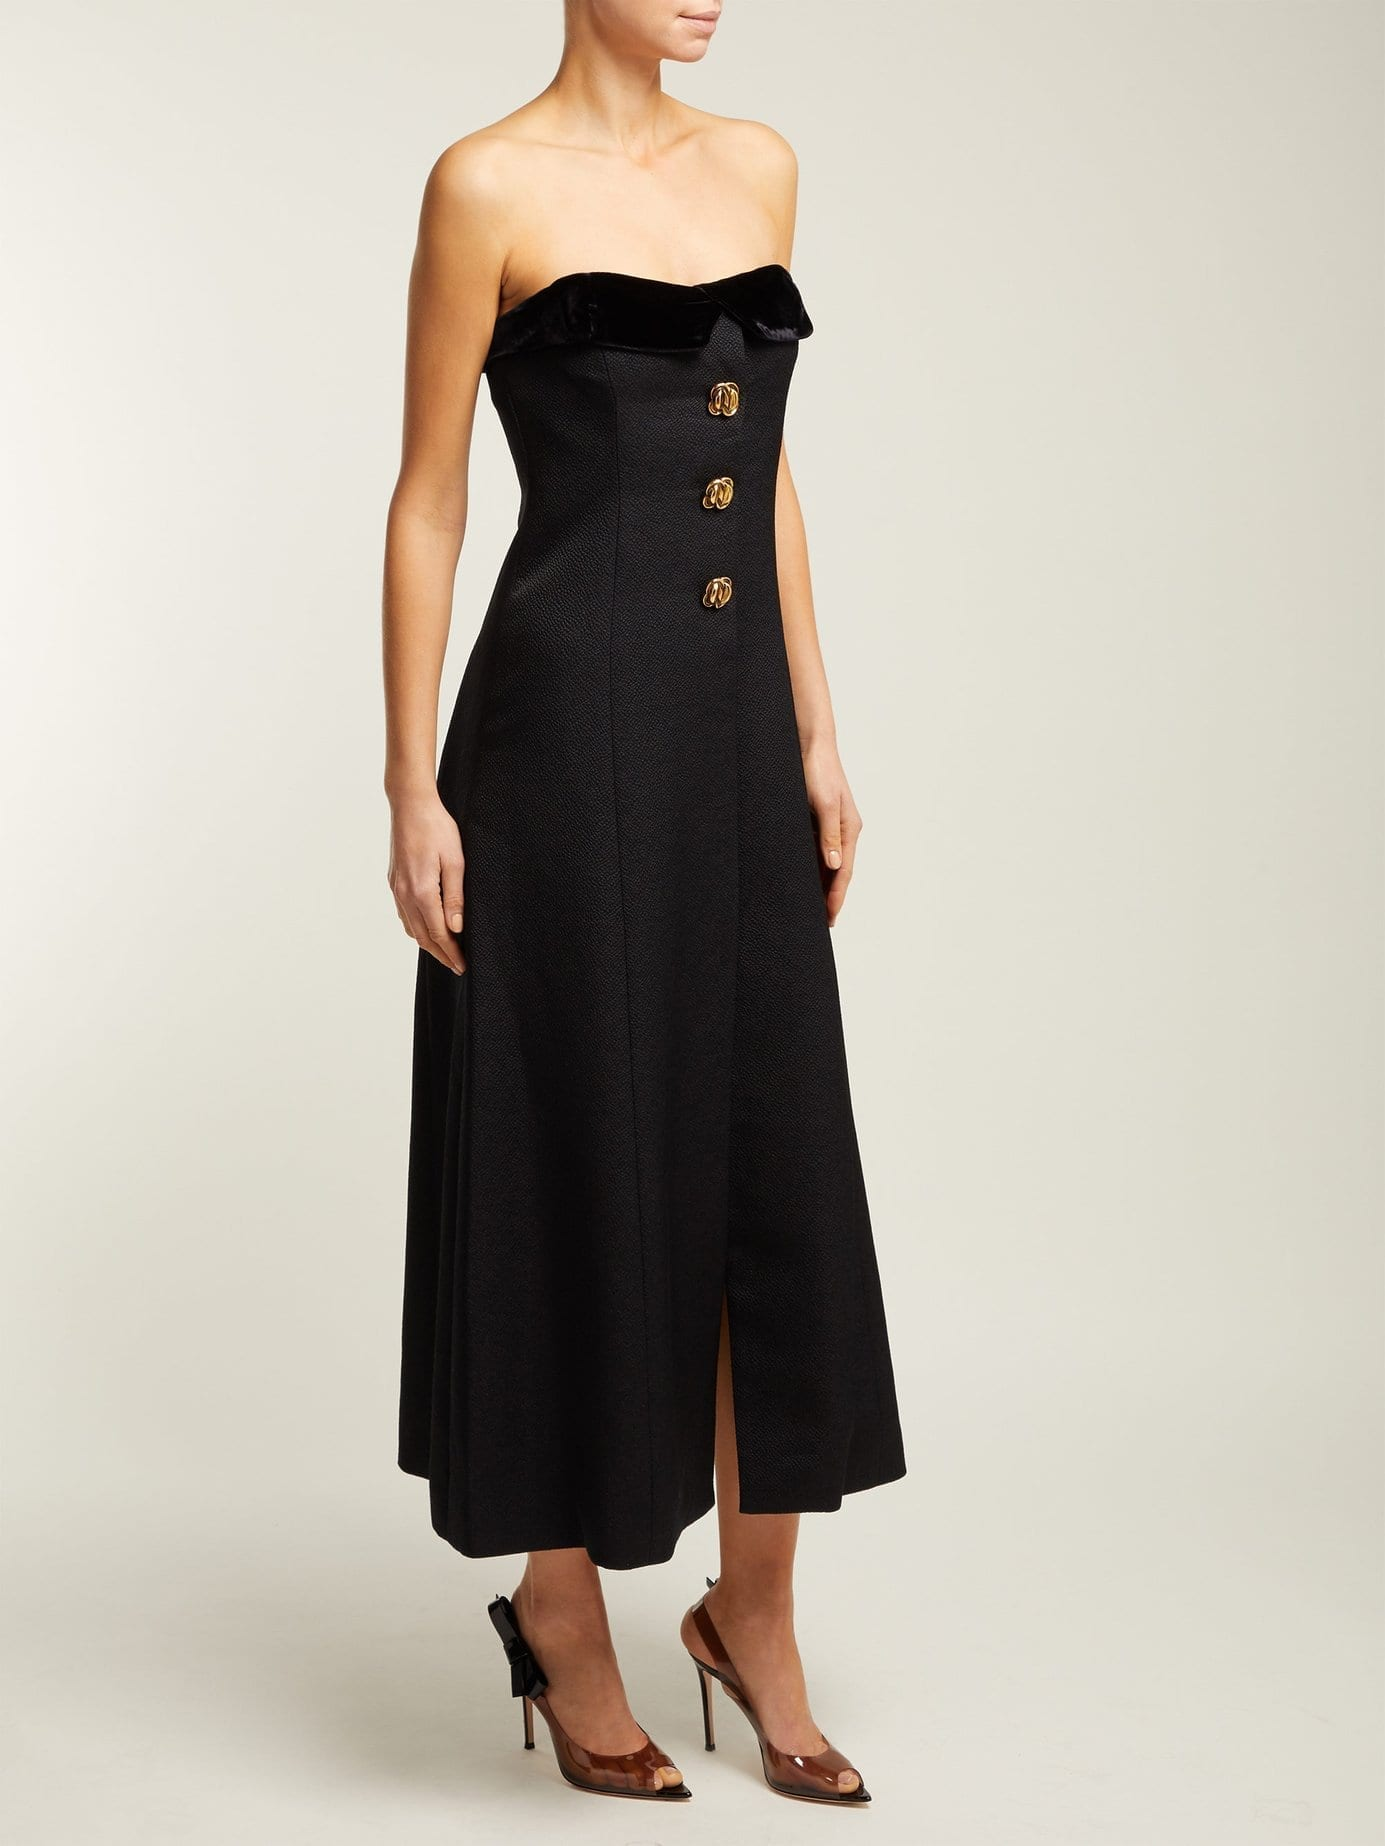 REBECCA DE RAVENEL Strapless Silk And Wool-blend Midi Black Dress